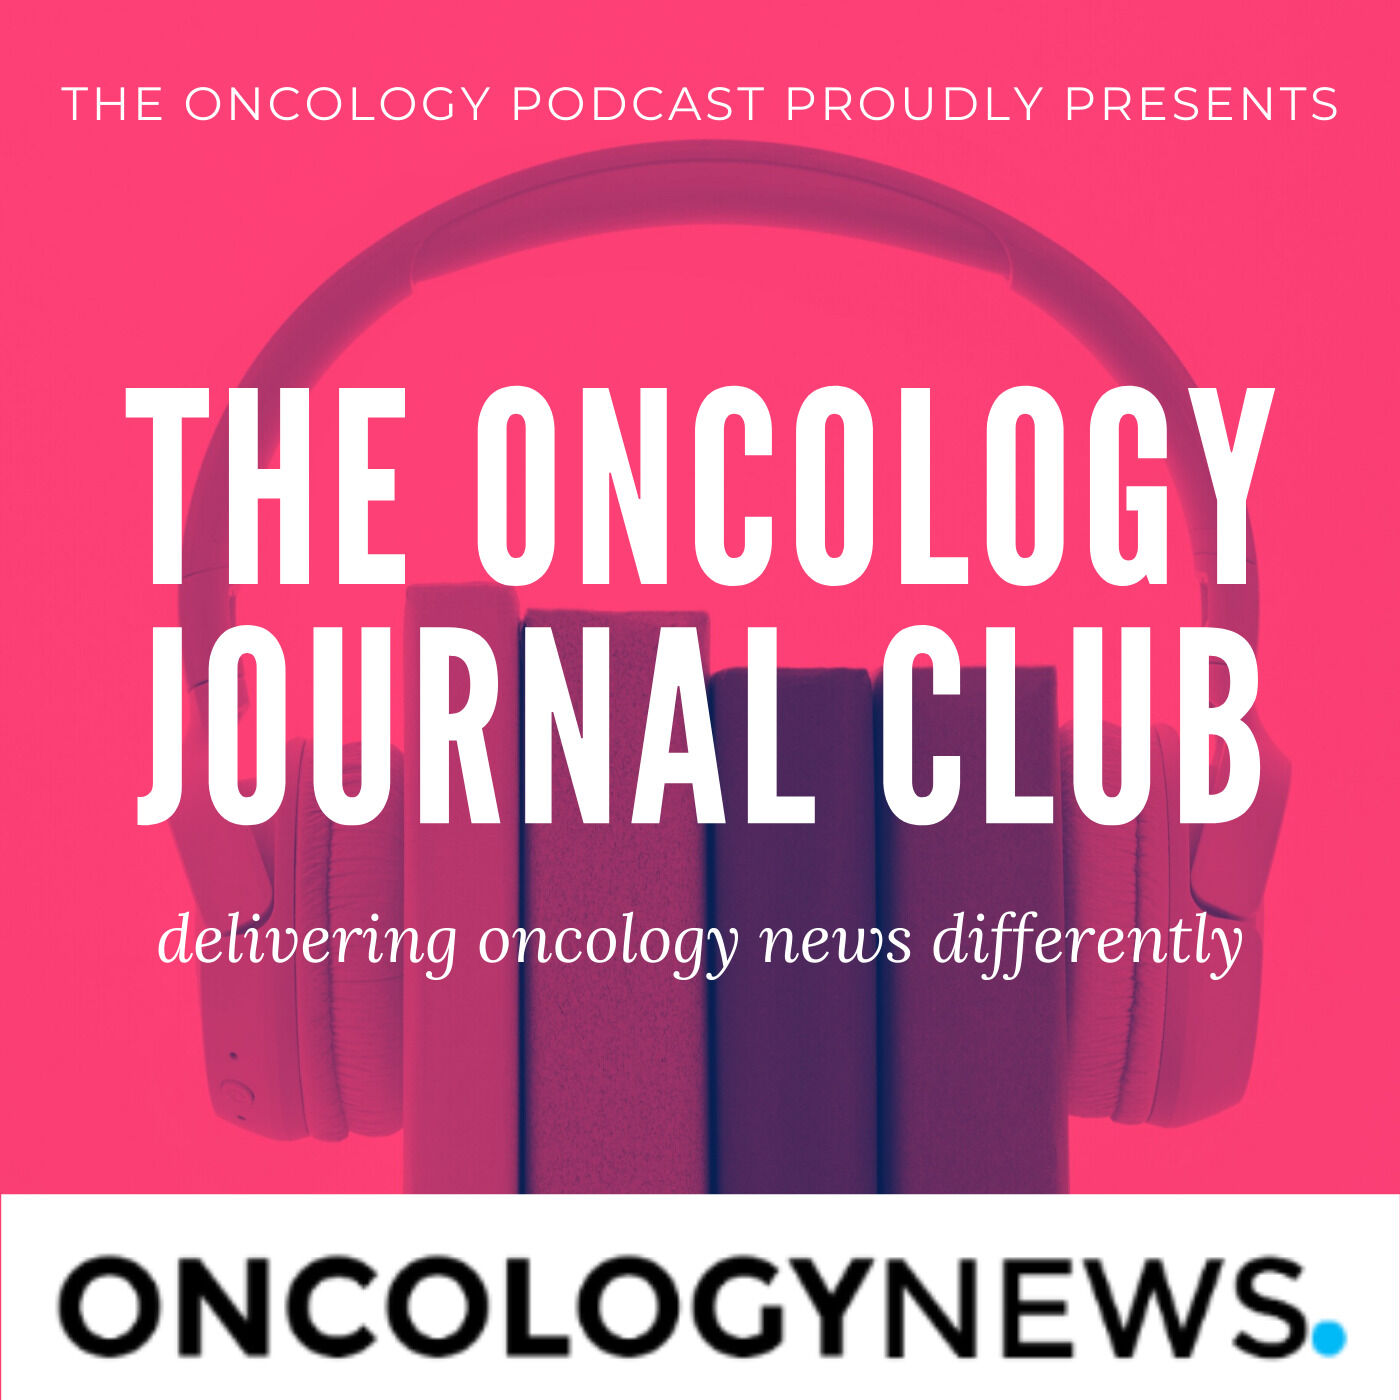 The Oncology Journal Club Episode 2: ASCO Preview, Disney Movies, Hepatocellular Carcinoma, Non-Small-Cell Lung Cancer and much more